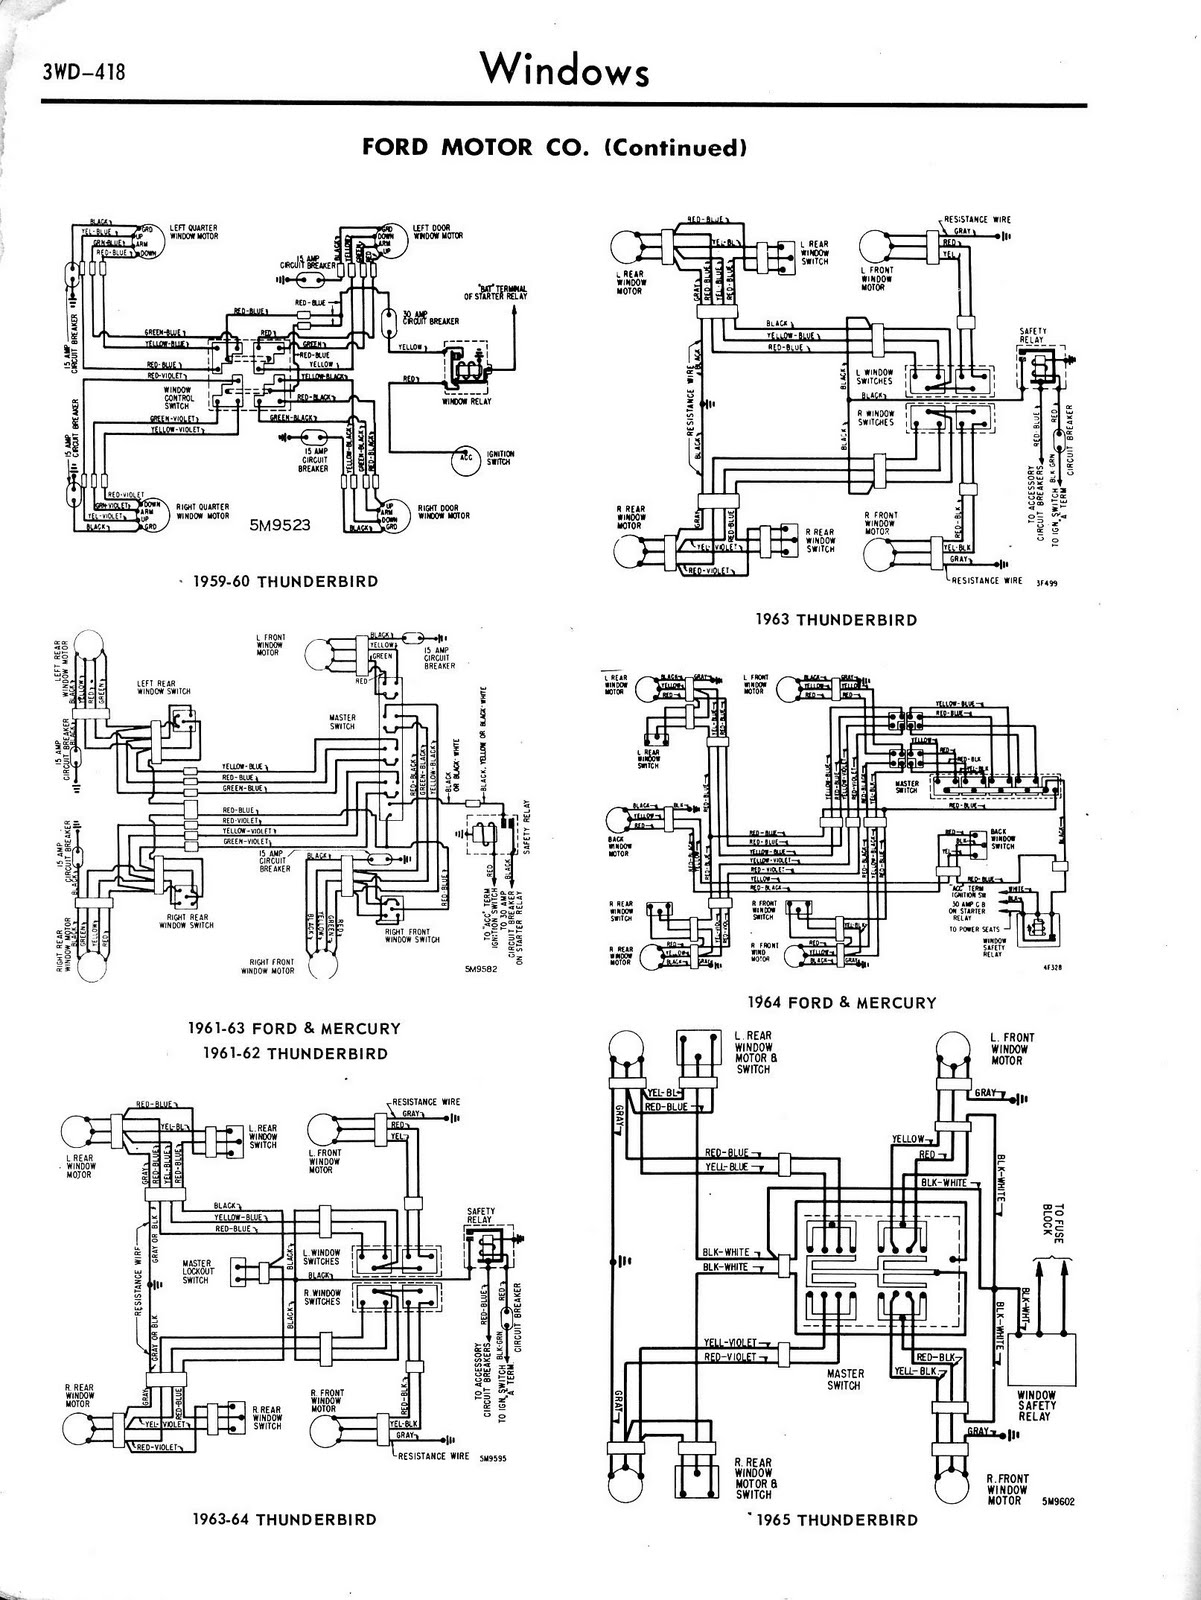 1966 Thunderbird Fuse Box Automotive Wiring Diagram 97 Ford Power Window Library Rh 86 Muehlwald De 1965